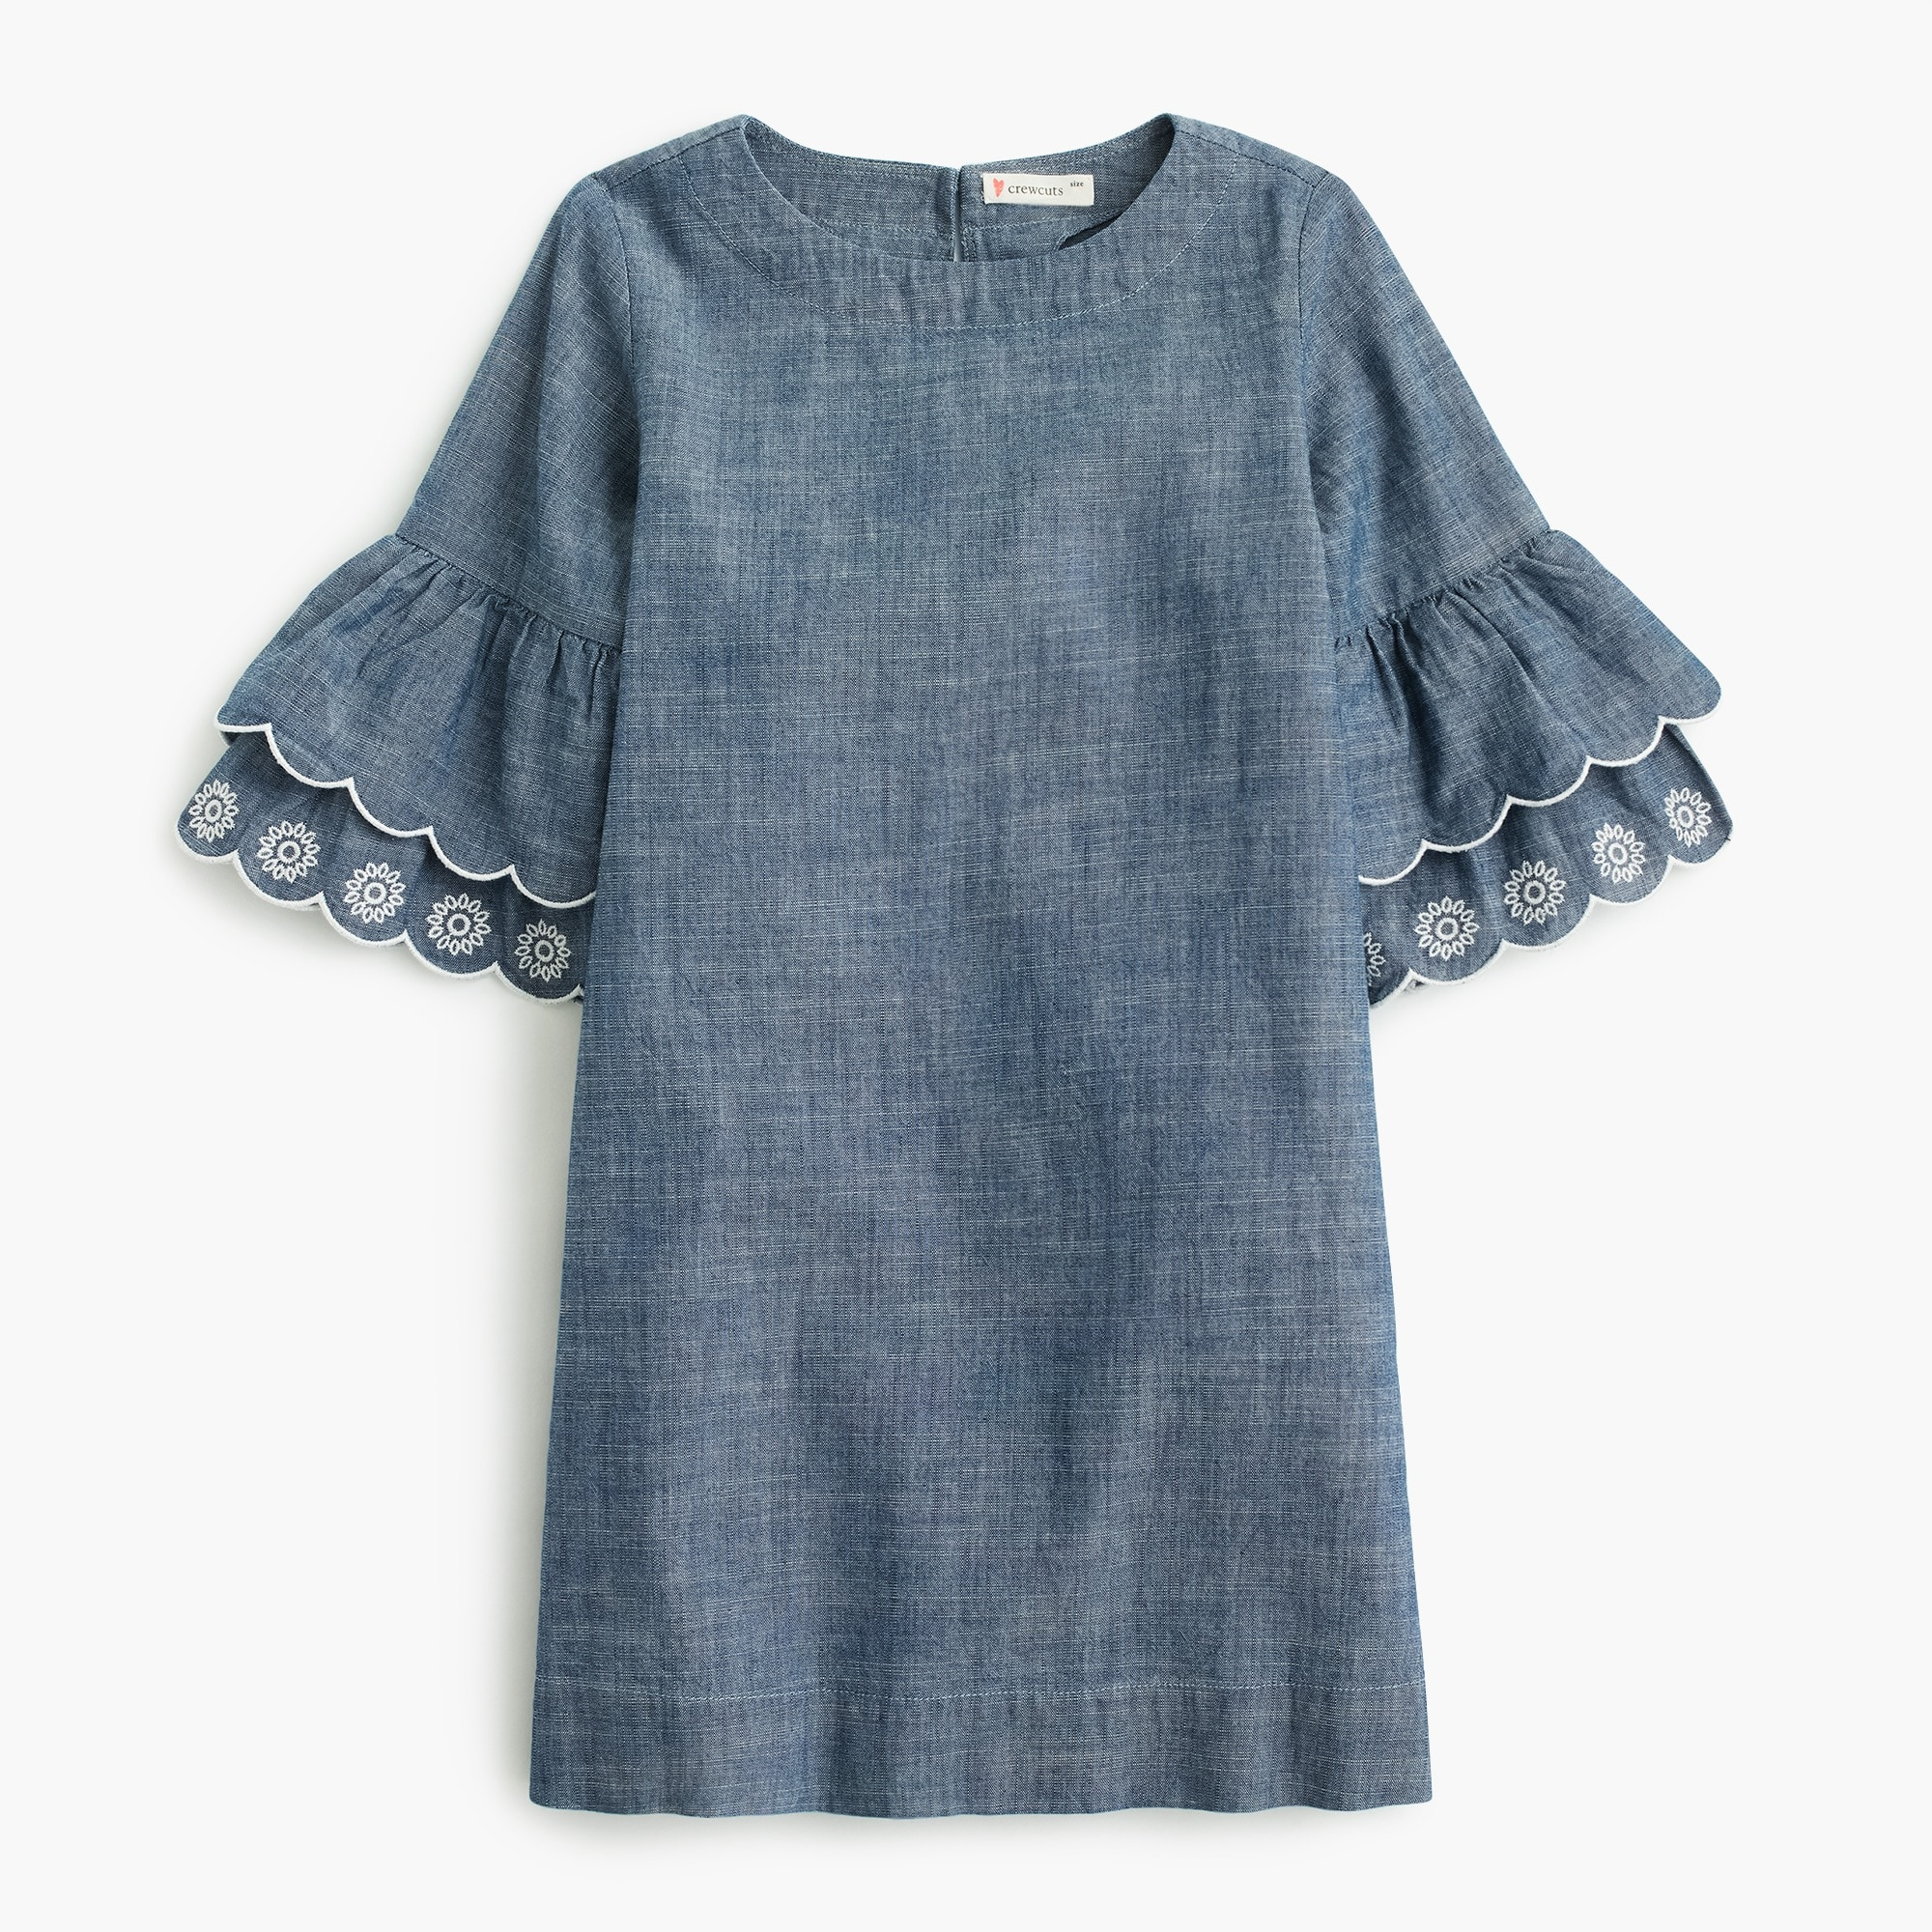 Girls' ruffle-sleeve chambray dress girl new arrivals c